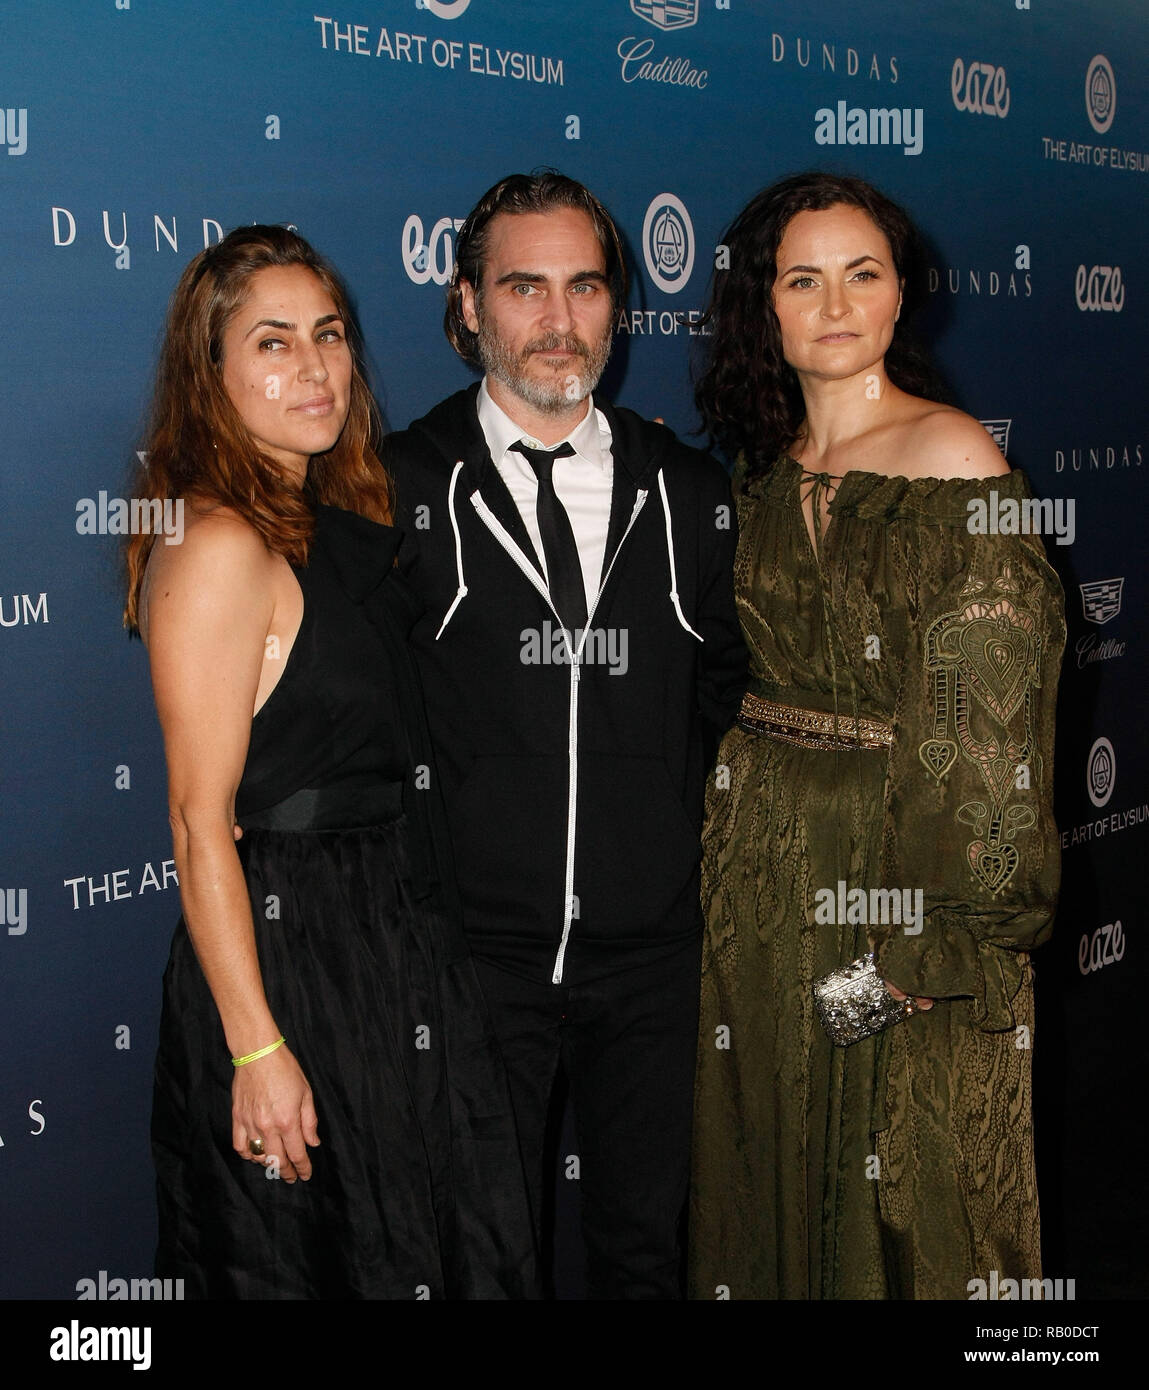 California, USA. 5th Jan 2019. Rain Phoenix, Joaquin Phoenix and Summer Phoenix attend HEAVEN, presented by The Art of Elysium, on January 5, 2019 in Los Angeles, California. Photo: imageSPACE/MediaPunch Credit: MediaPunch Inc/Alamy Live News - Stock Image